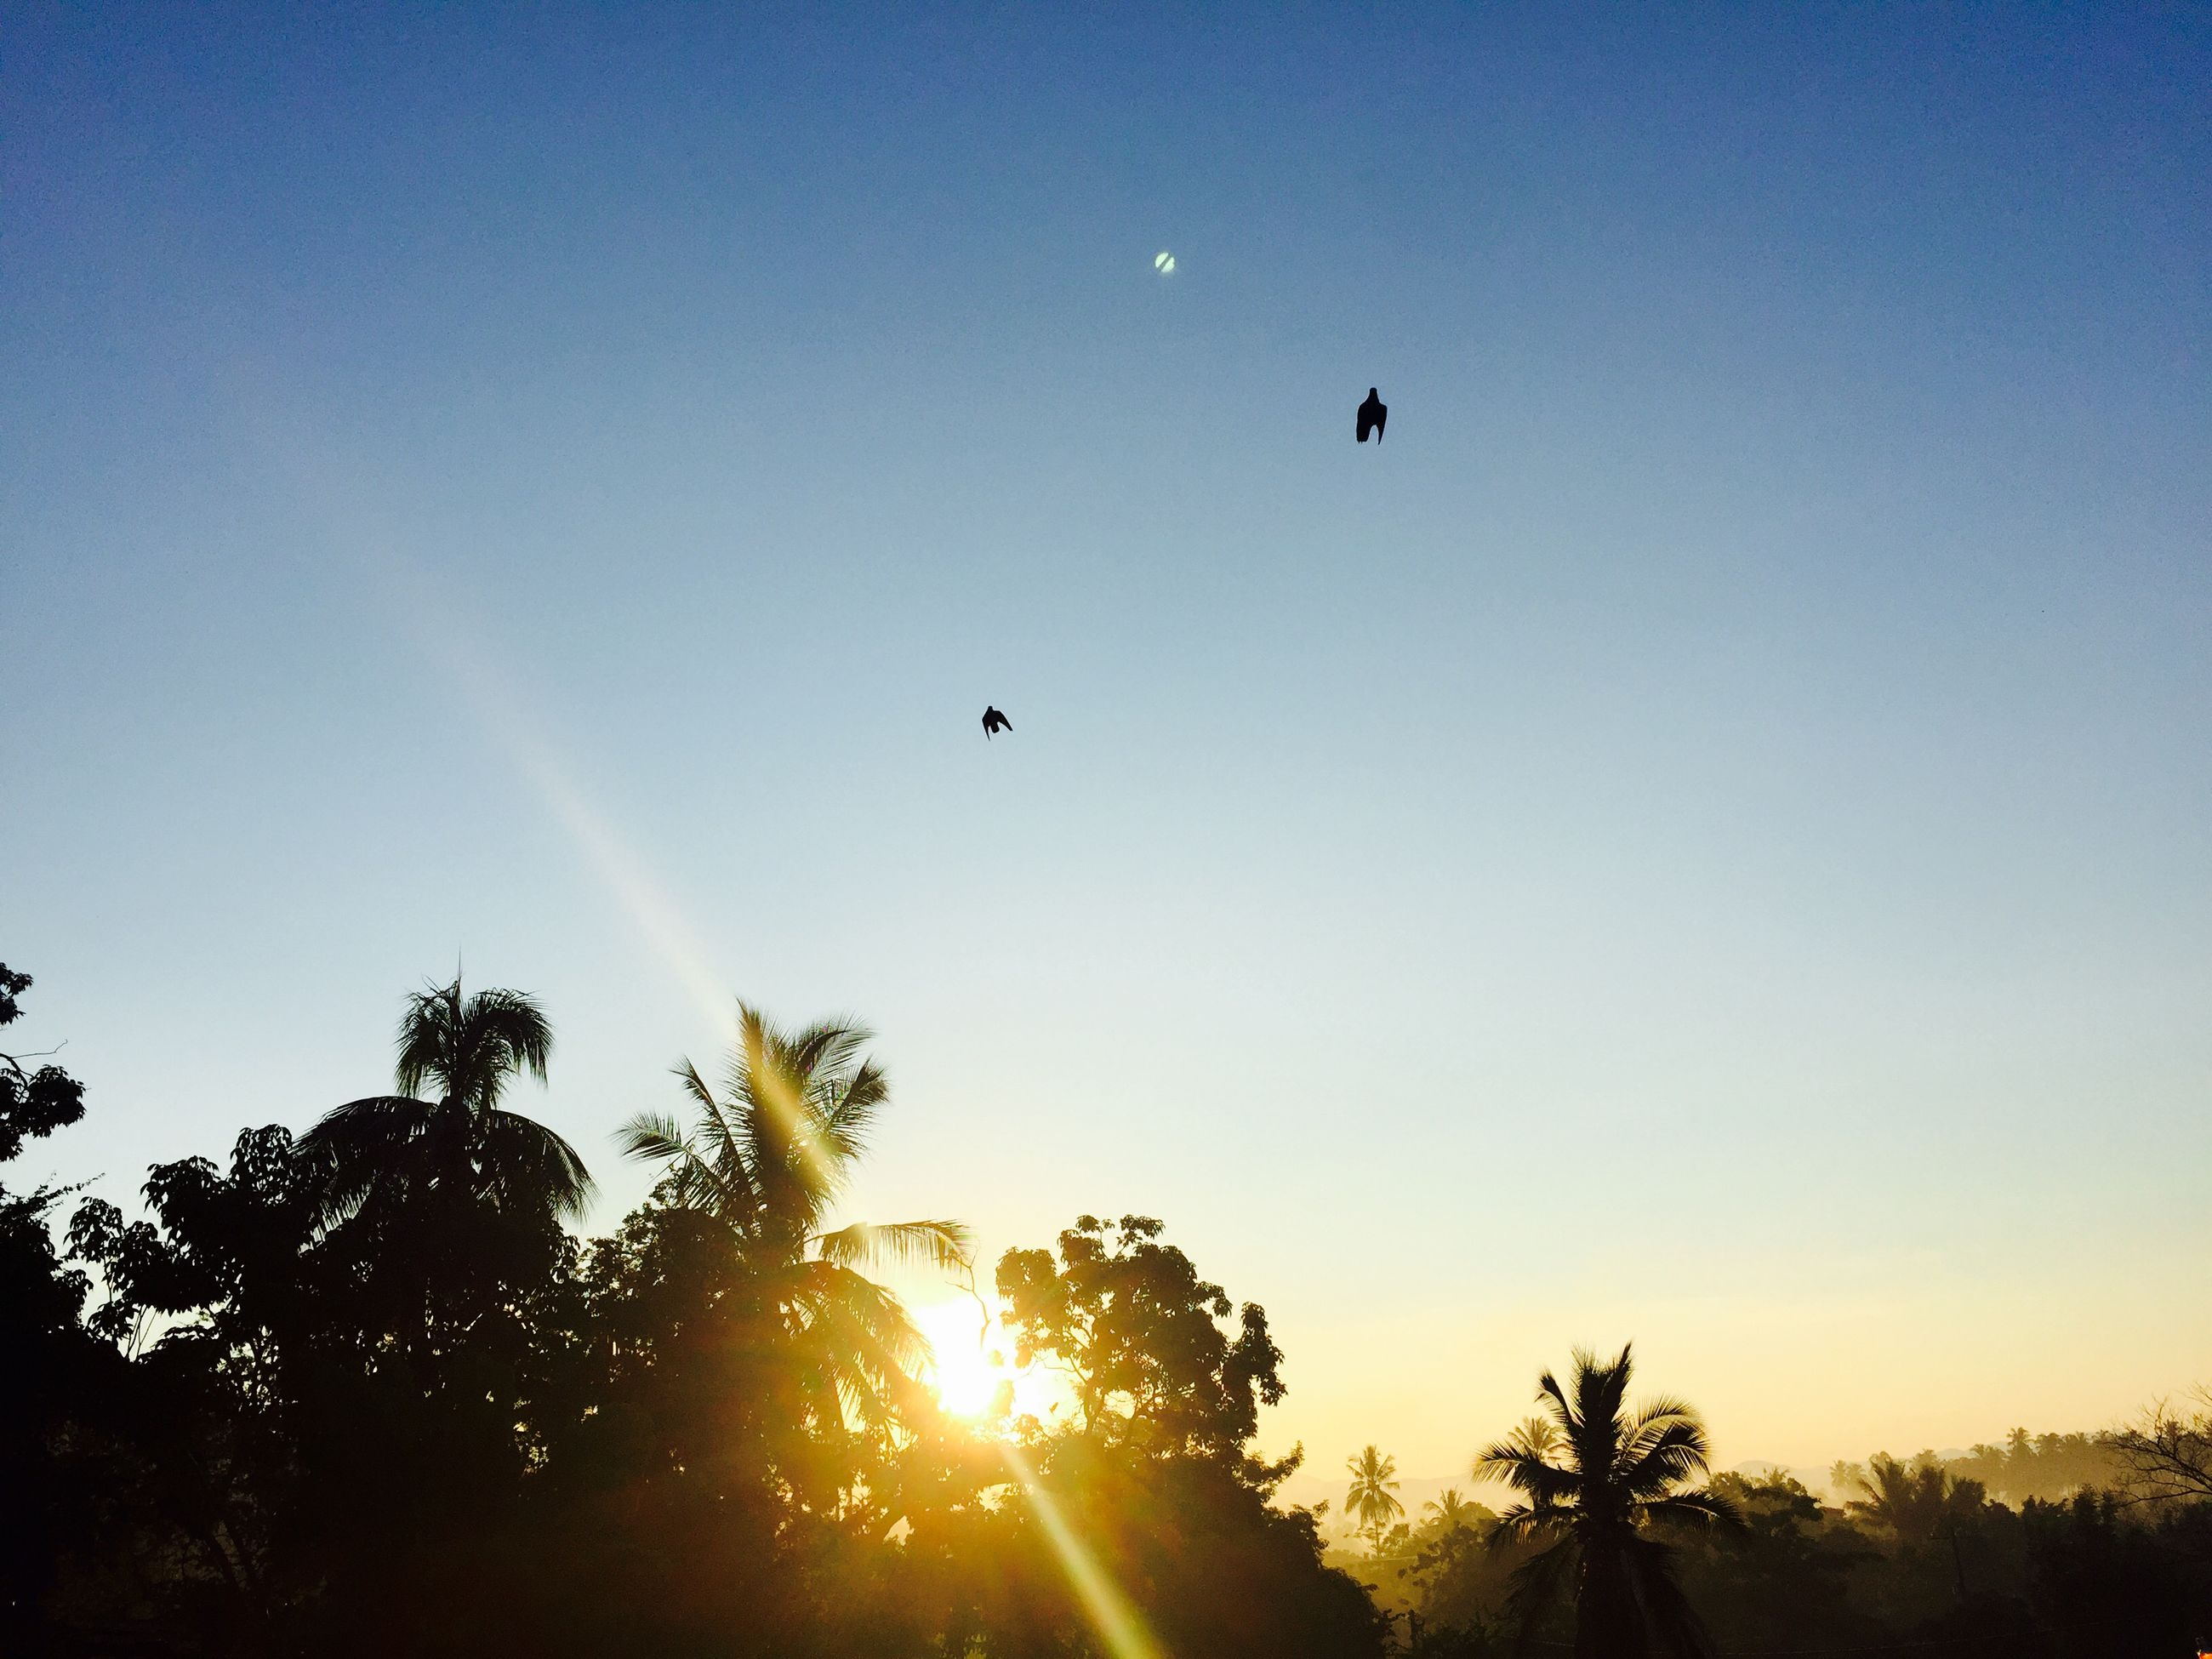 flying, sun, bird, low angle view, mid-air, animal themes, clear sky, silhouette, sunset, animals in the wild, sunbeam, lens flare, sunlight, wildlife, beauty in nature, nature, sky, scenics, copy space, tree